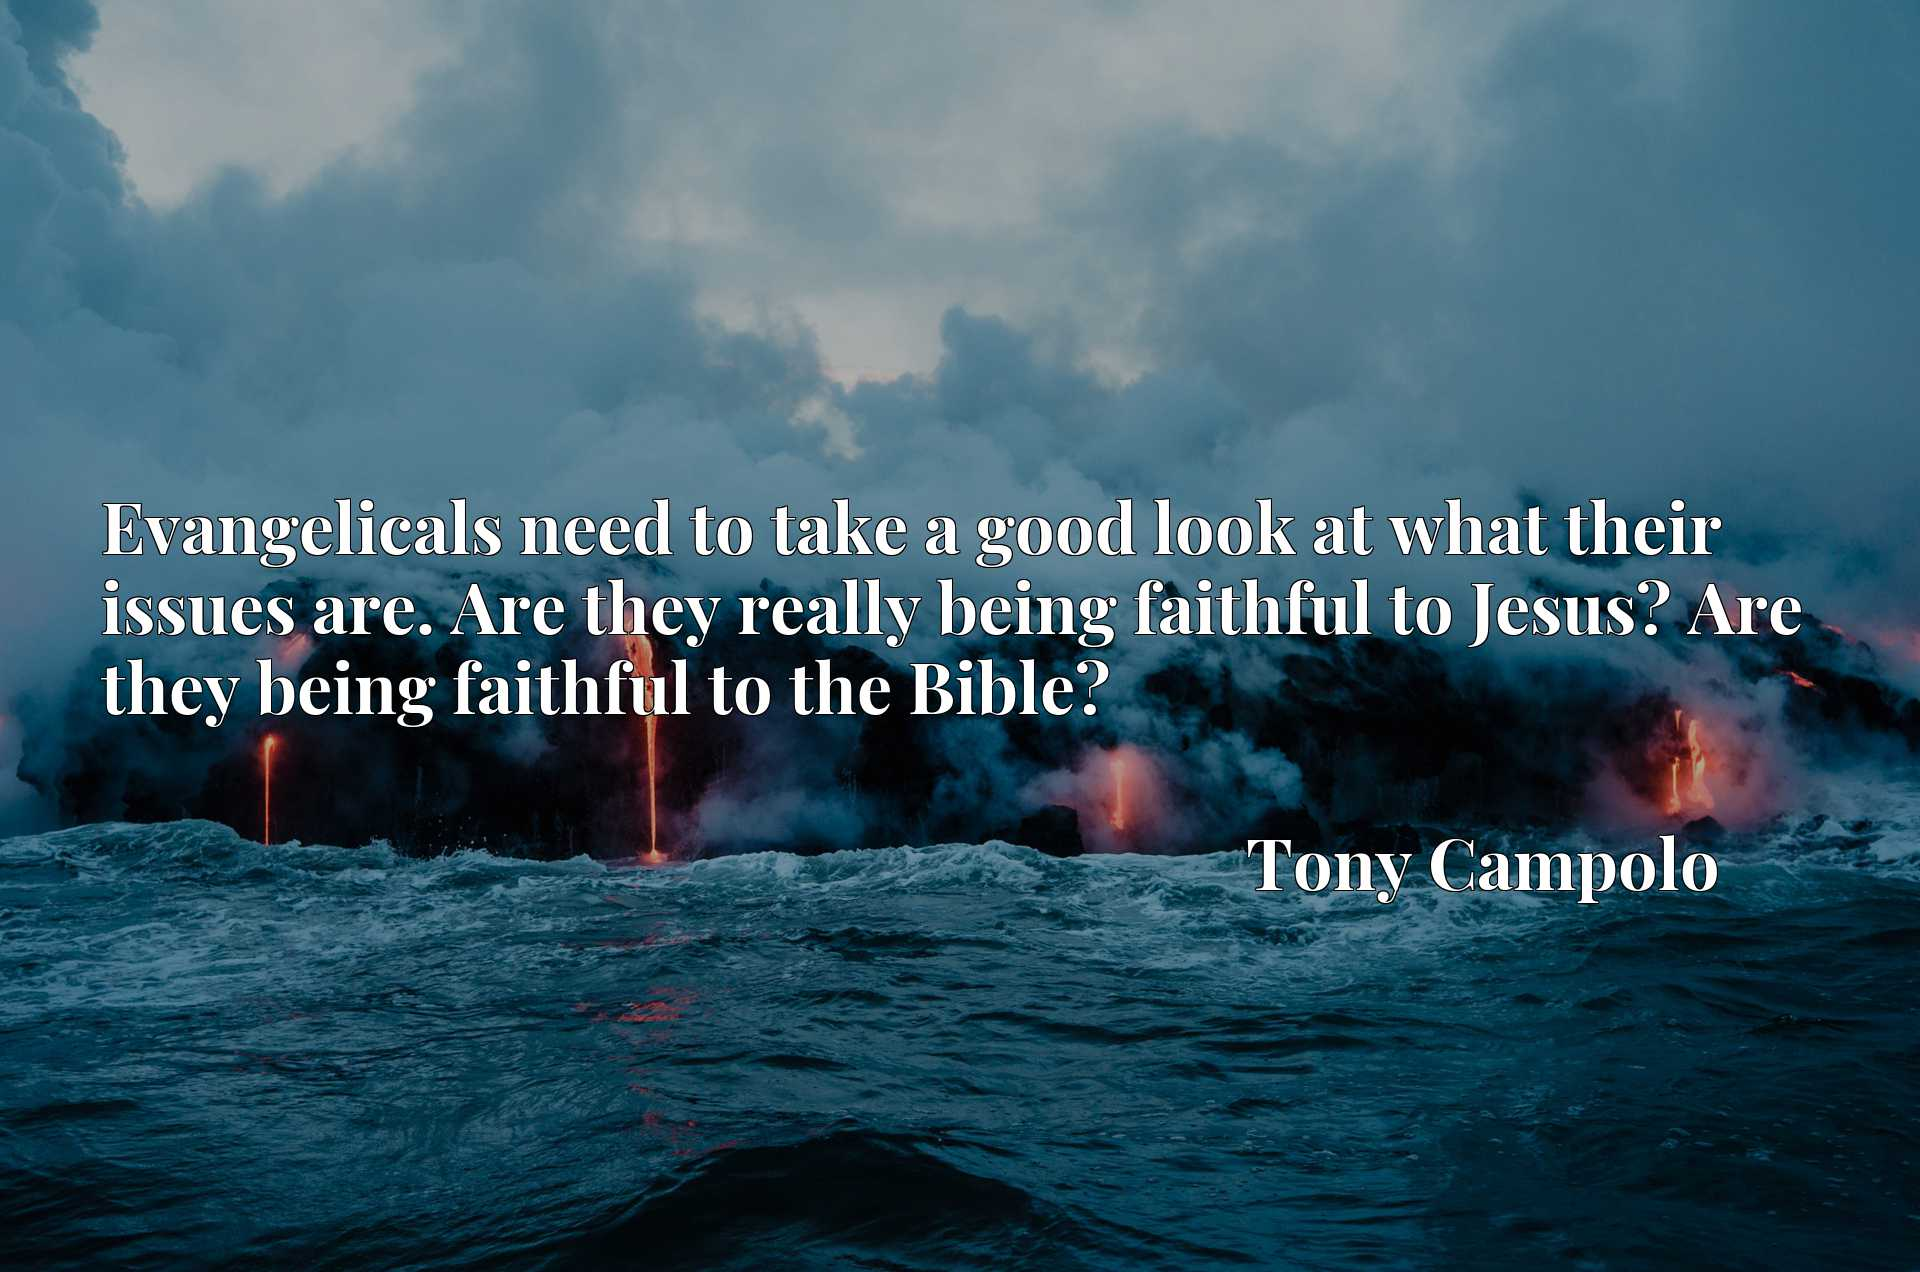 Evangelicals need to take a good look at what their issues are. Are they really being faithful to Jesus? Are they being faithful to the Bible?